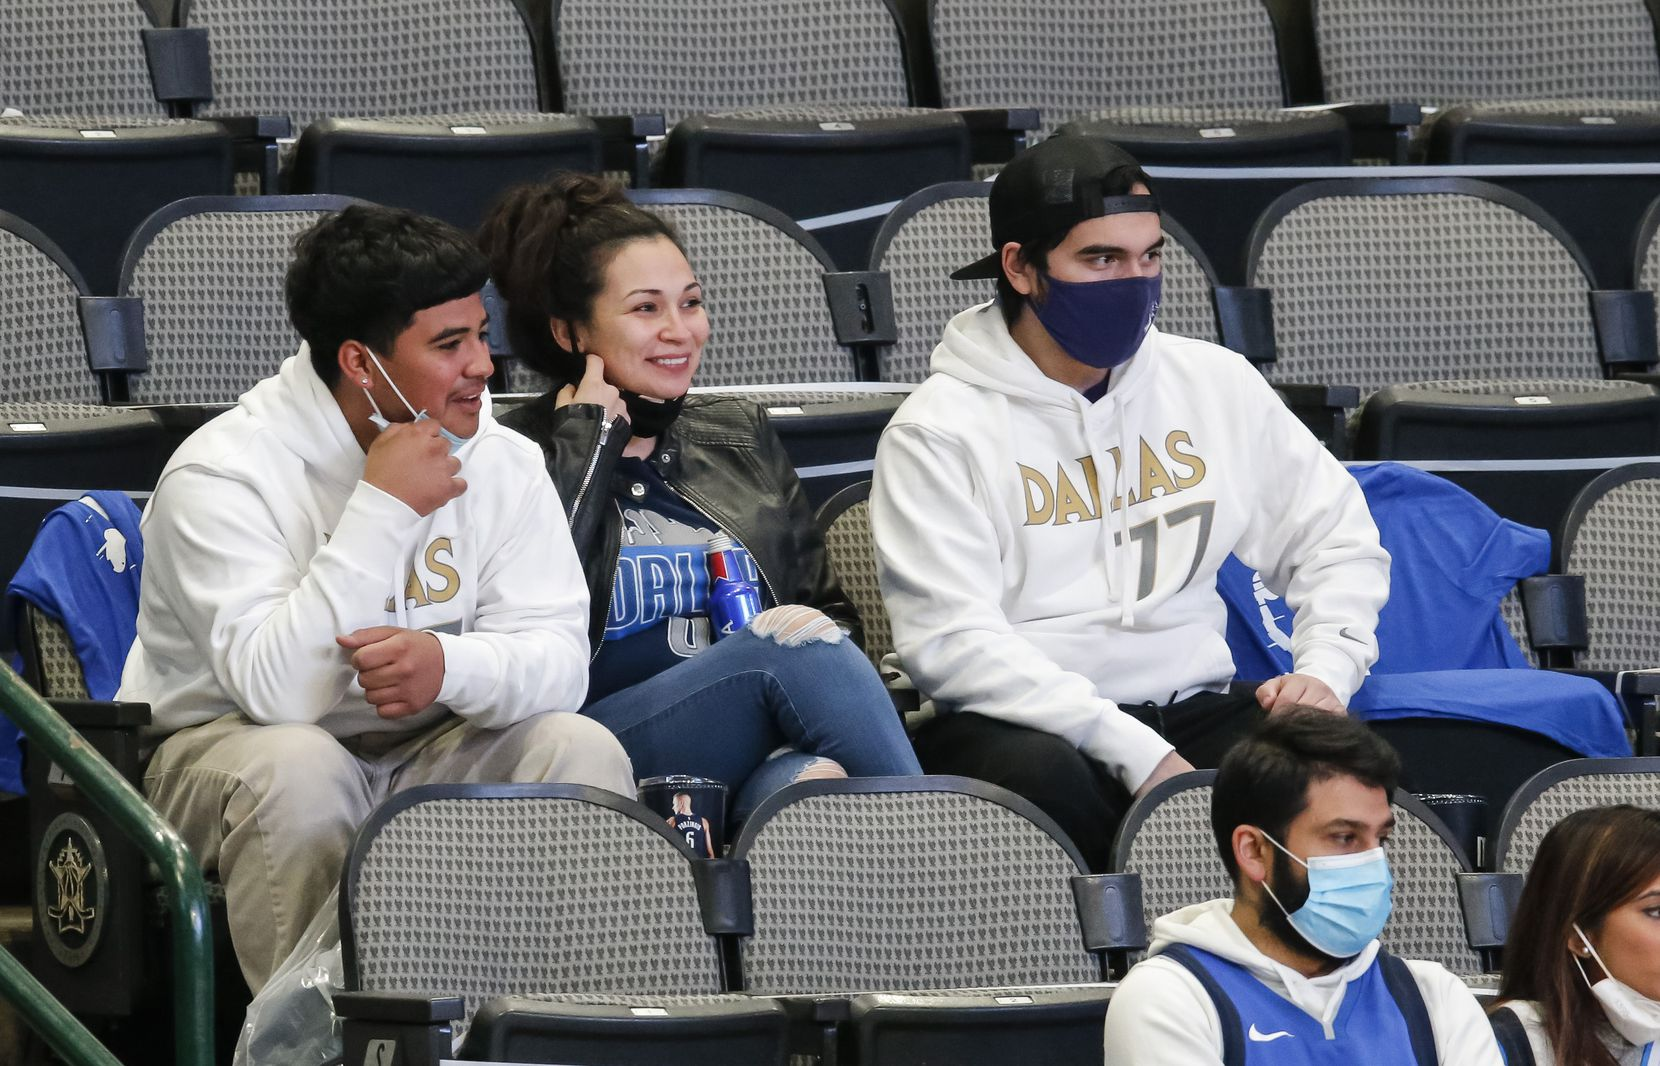 Parkland nurse Heather Lopez, center, watches the Dallas Mavericks take on the Atlanta Hawks during the first half of an NBA basketball game in Dallas, Wednesday, February 10, 2021. (Brandon Wade/Special Contributor)